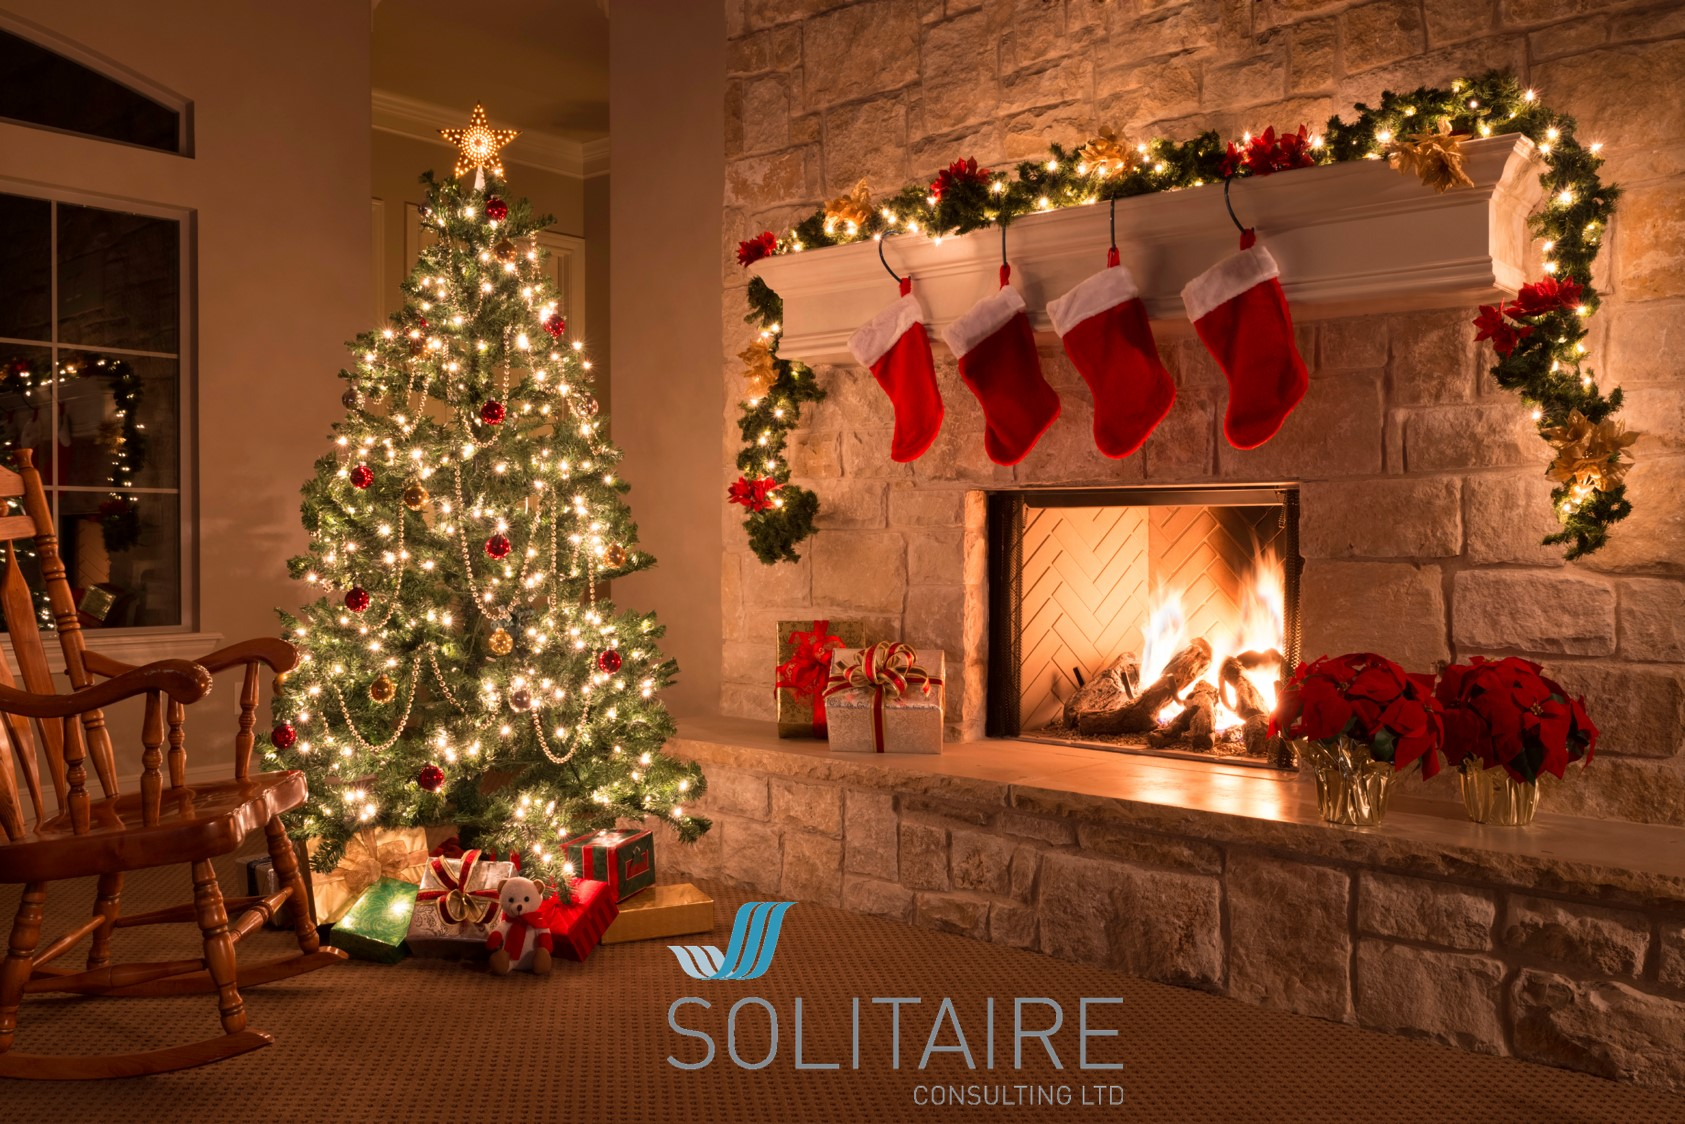 Solitaire consulting christmas picture